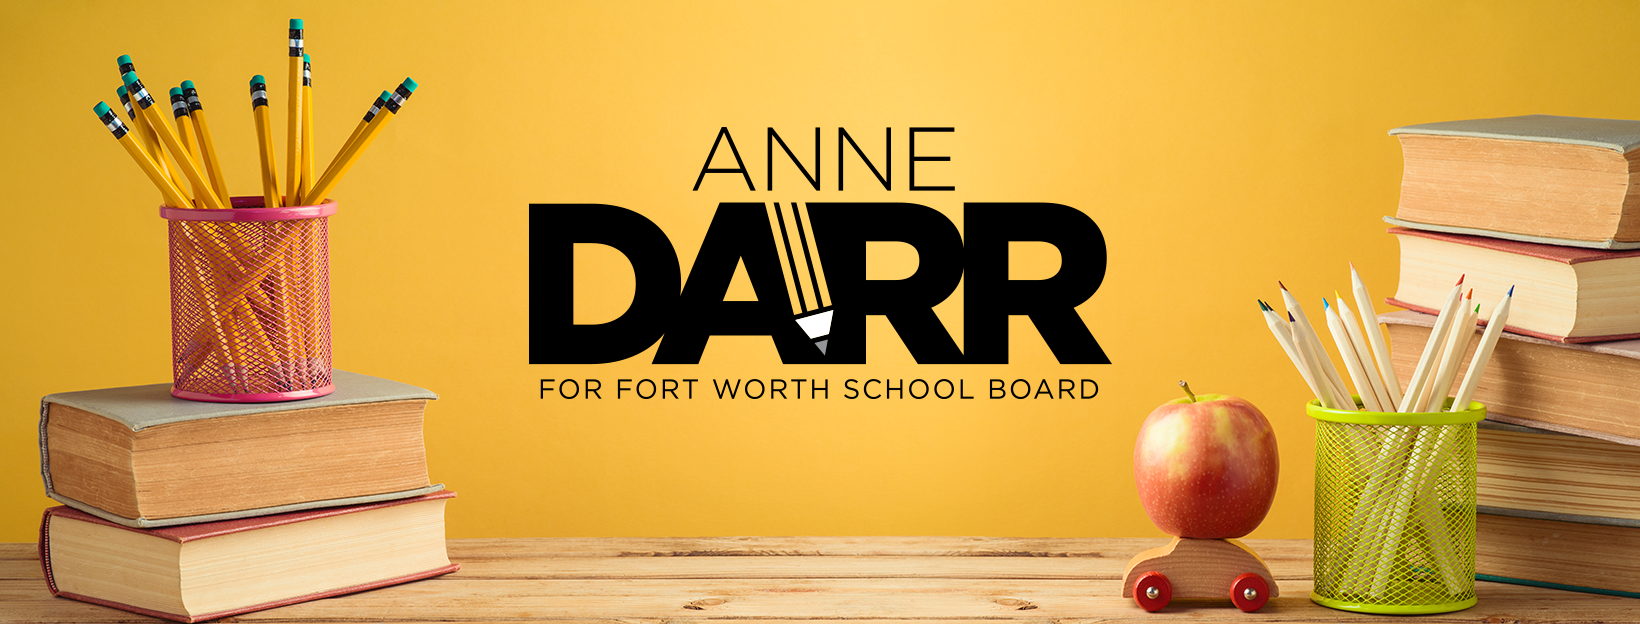 Anne Darr: General Fund